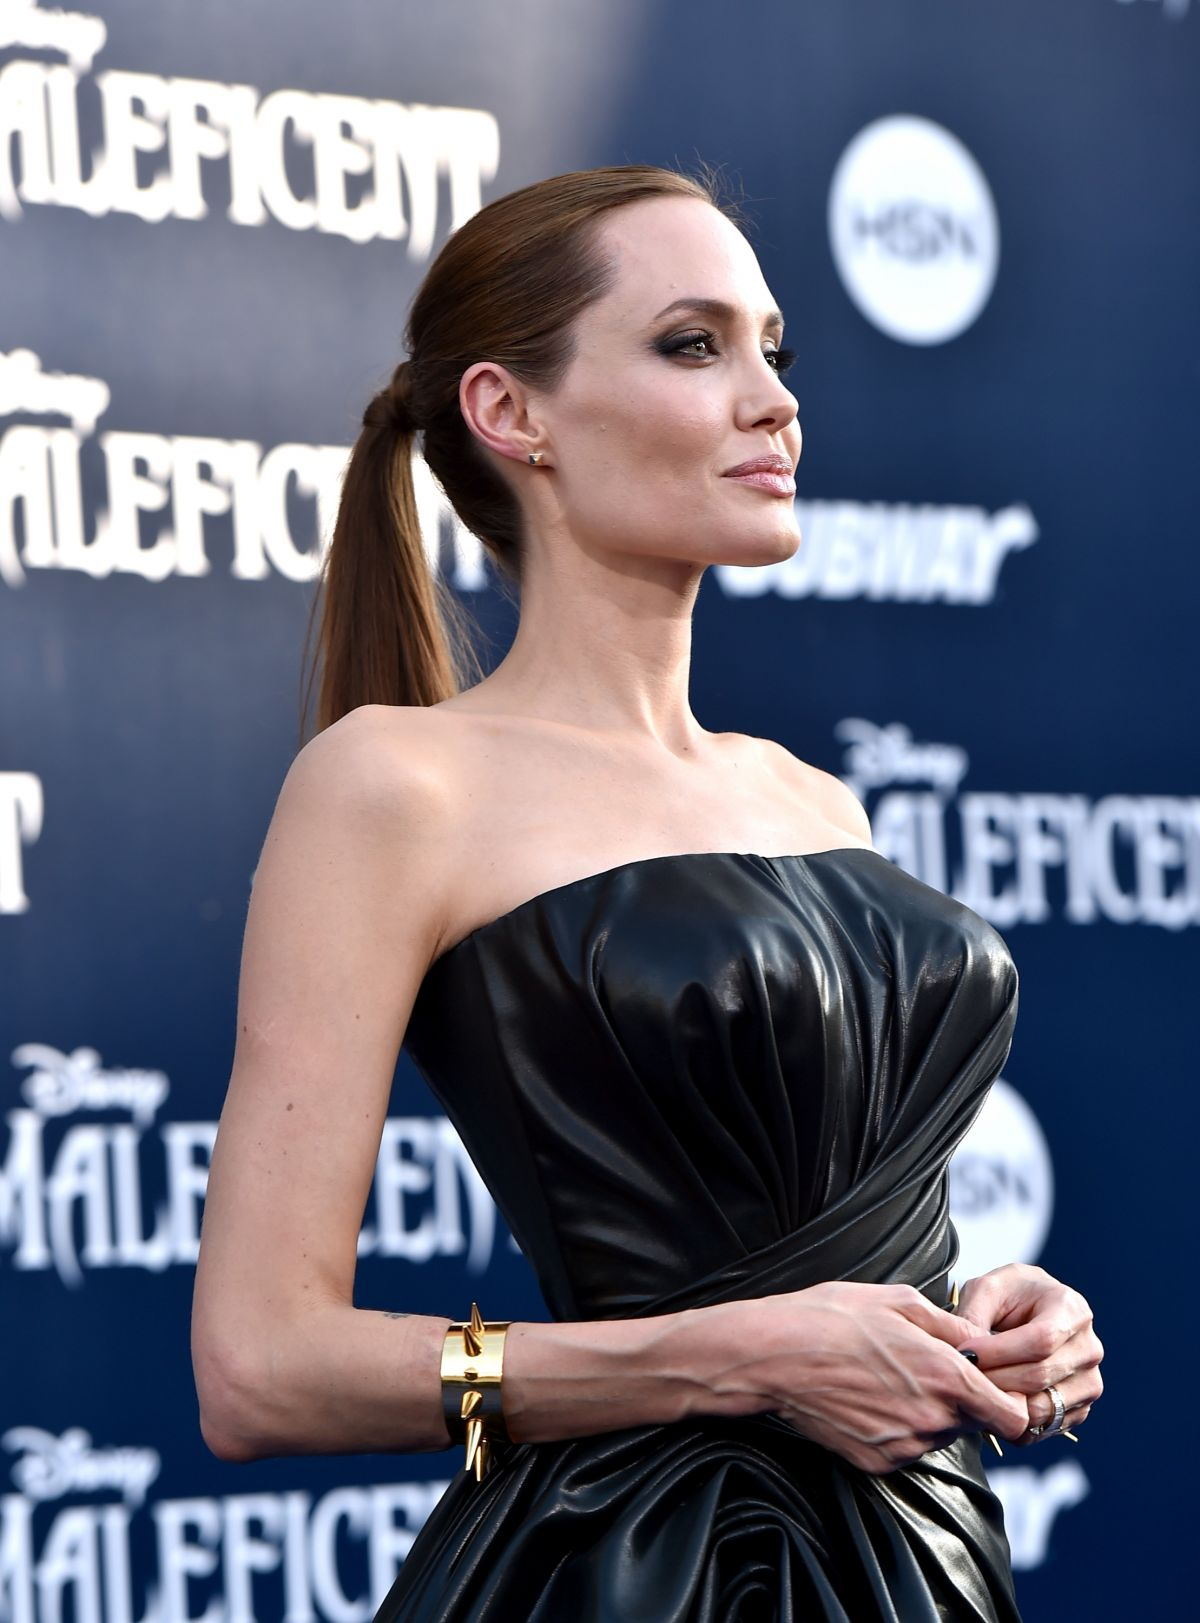 ANGELINA JOLIE at Maleficent Premiere in Hollywood